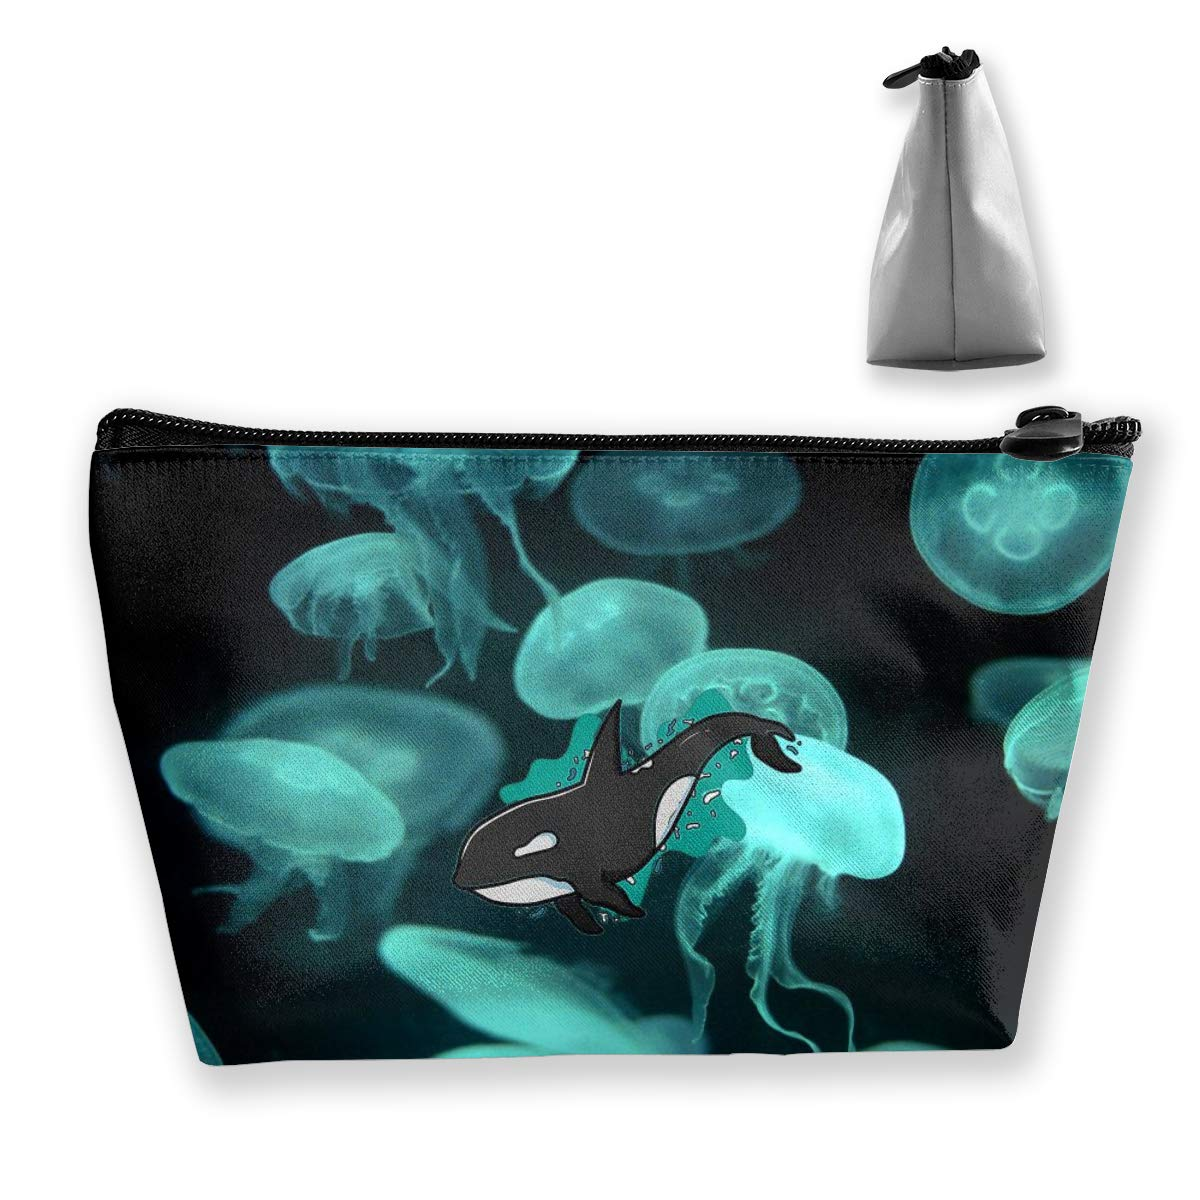 pengyong Beautiful Jellyfish Deep Sea Creature Makeup Bag Large Trapezoidal Storage Travel Bag Wash Cosmetic Pouch Pencil Holder Zipper Waterproof